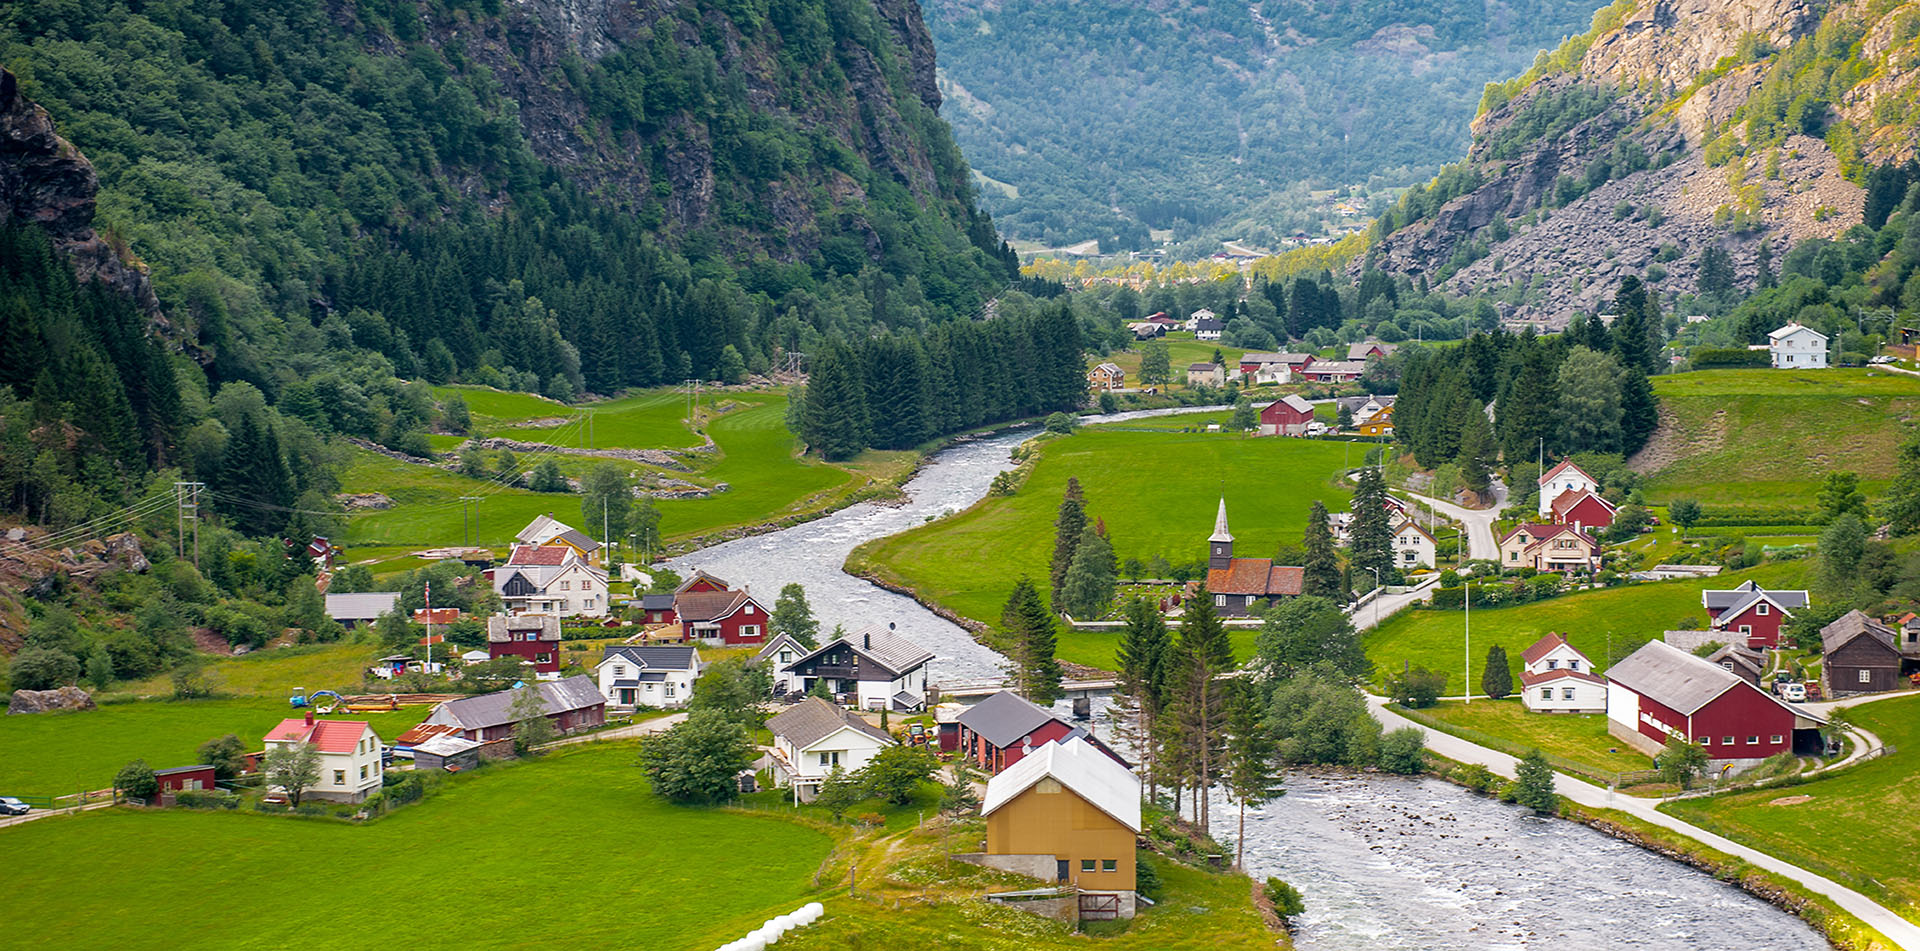 View from Flam Railway, Norway